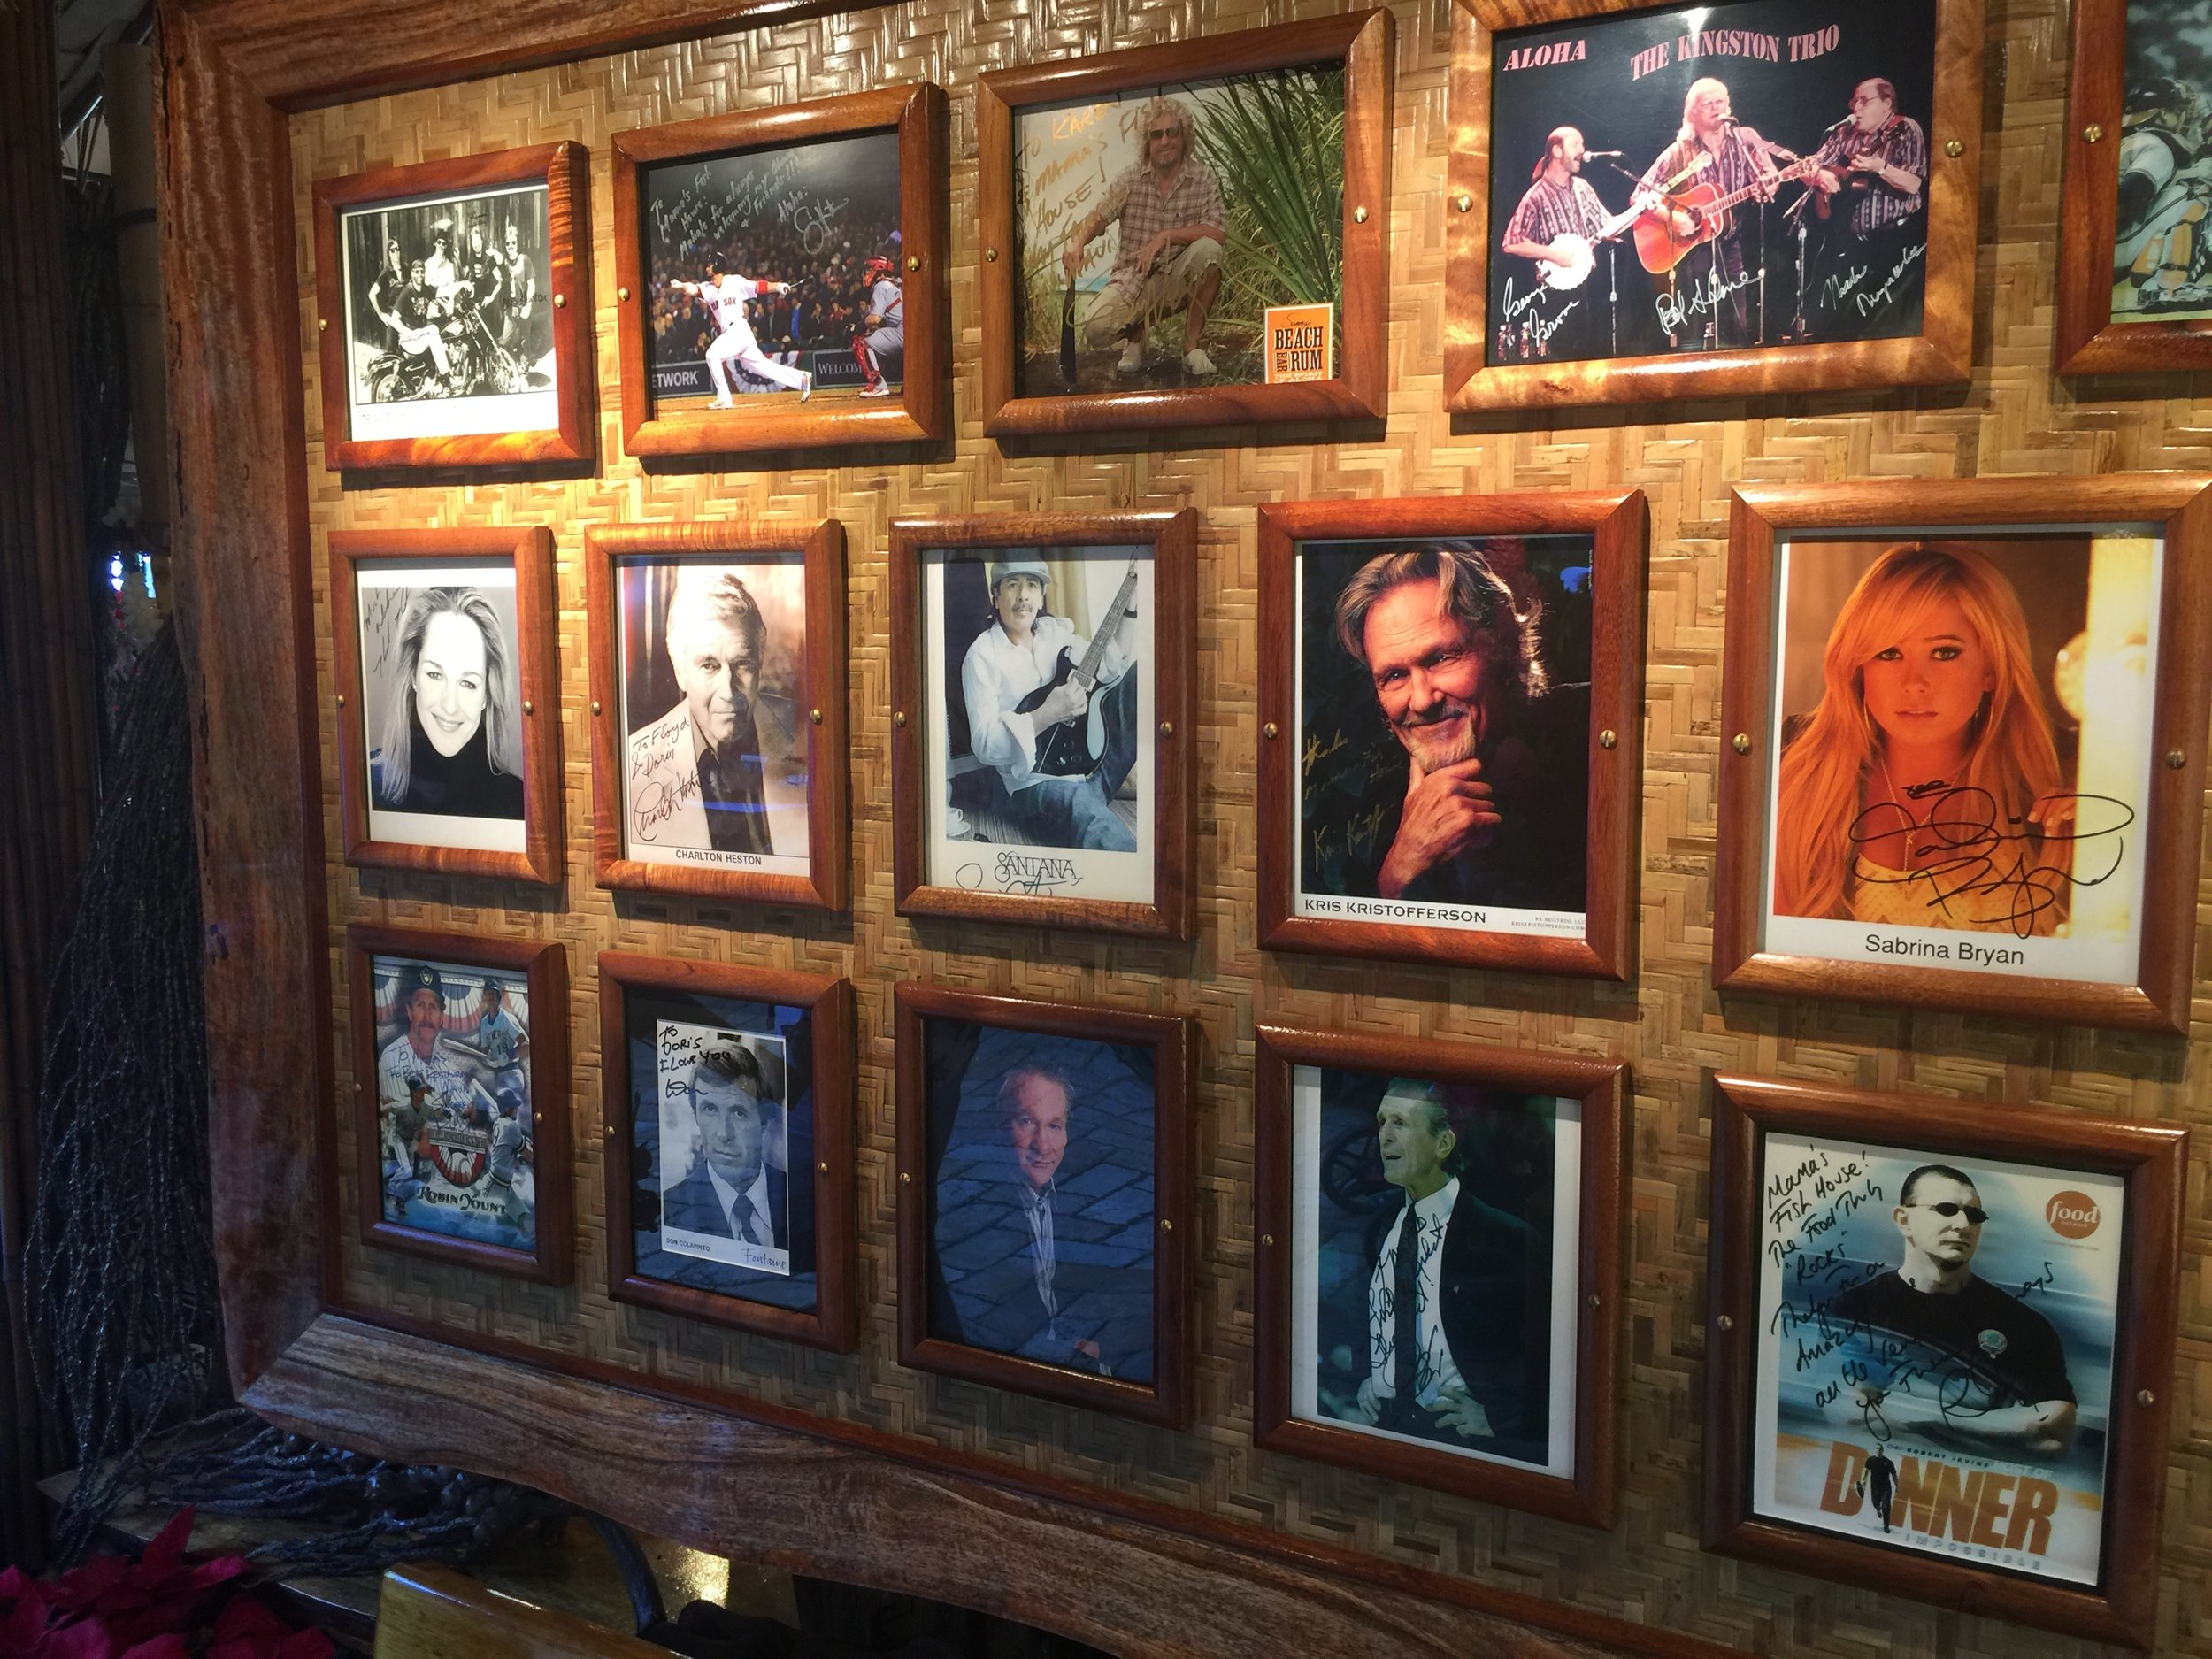 In the waiting area the walls are adorned with photos of celebrities who have dined here